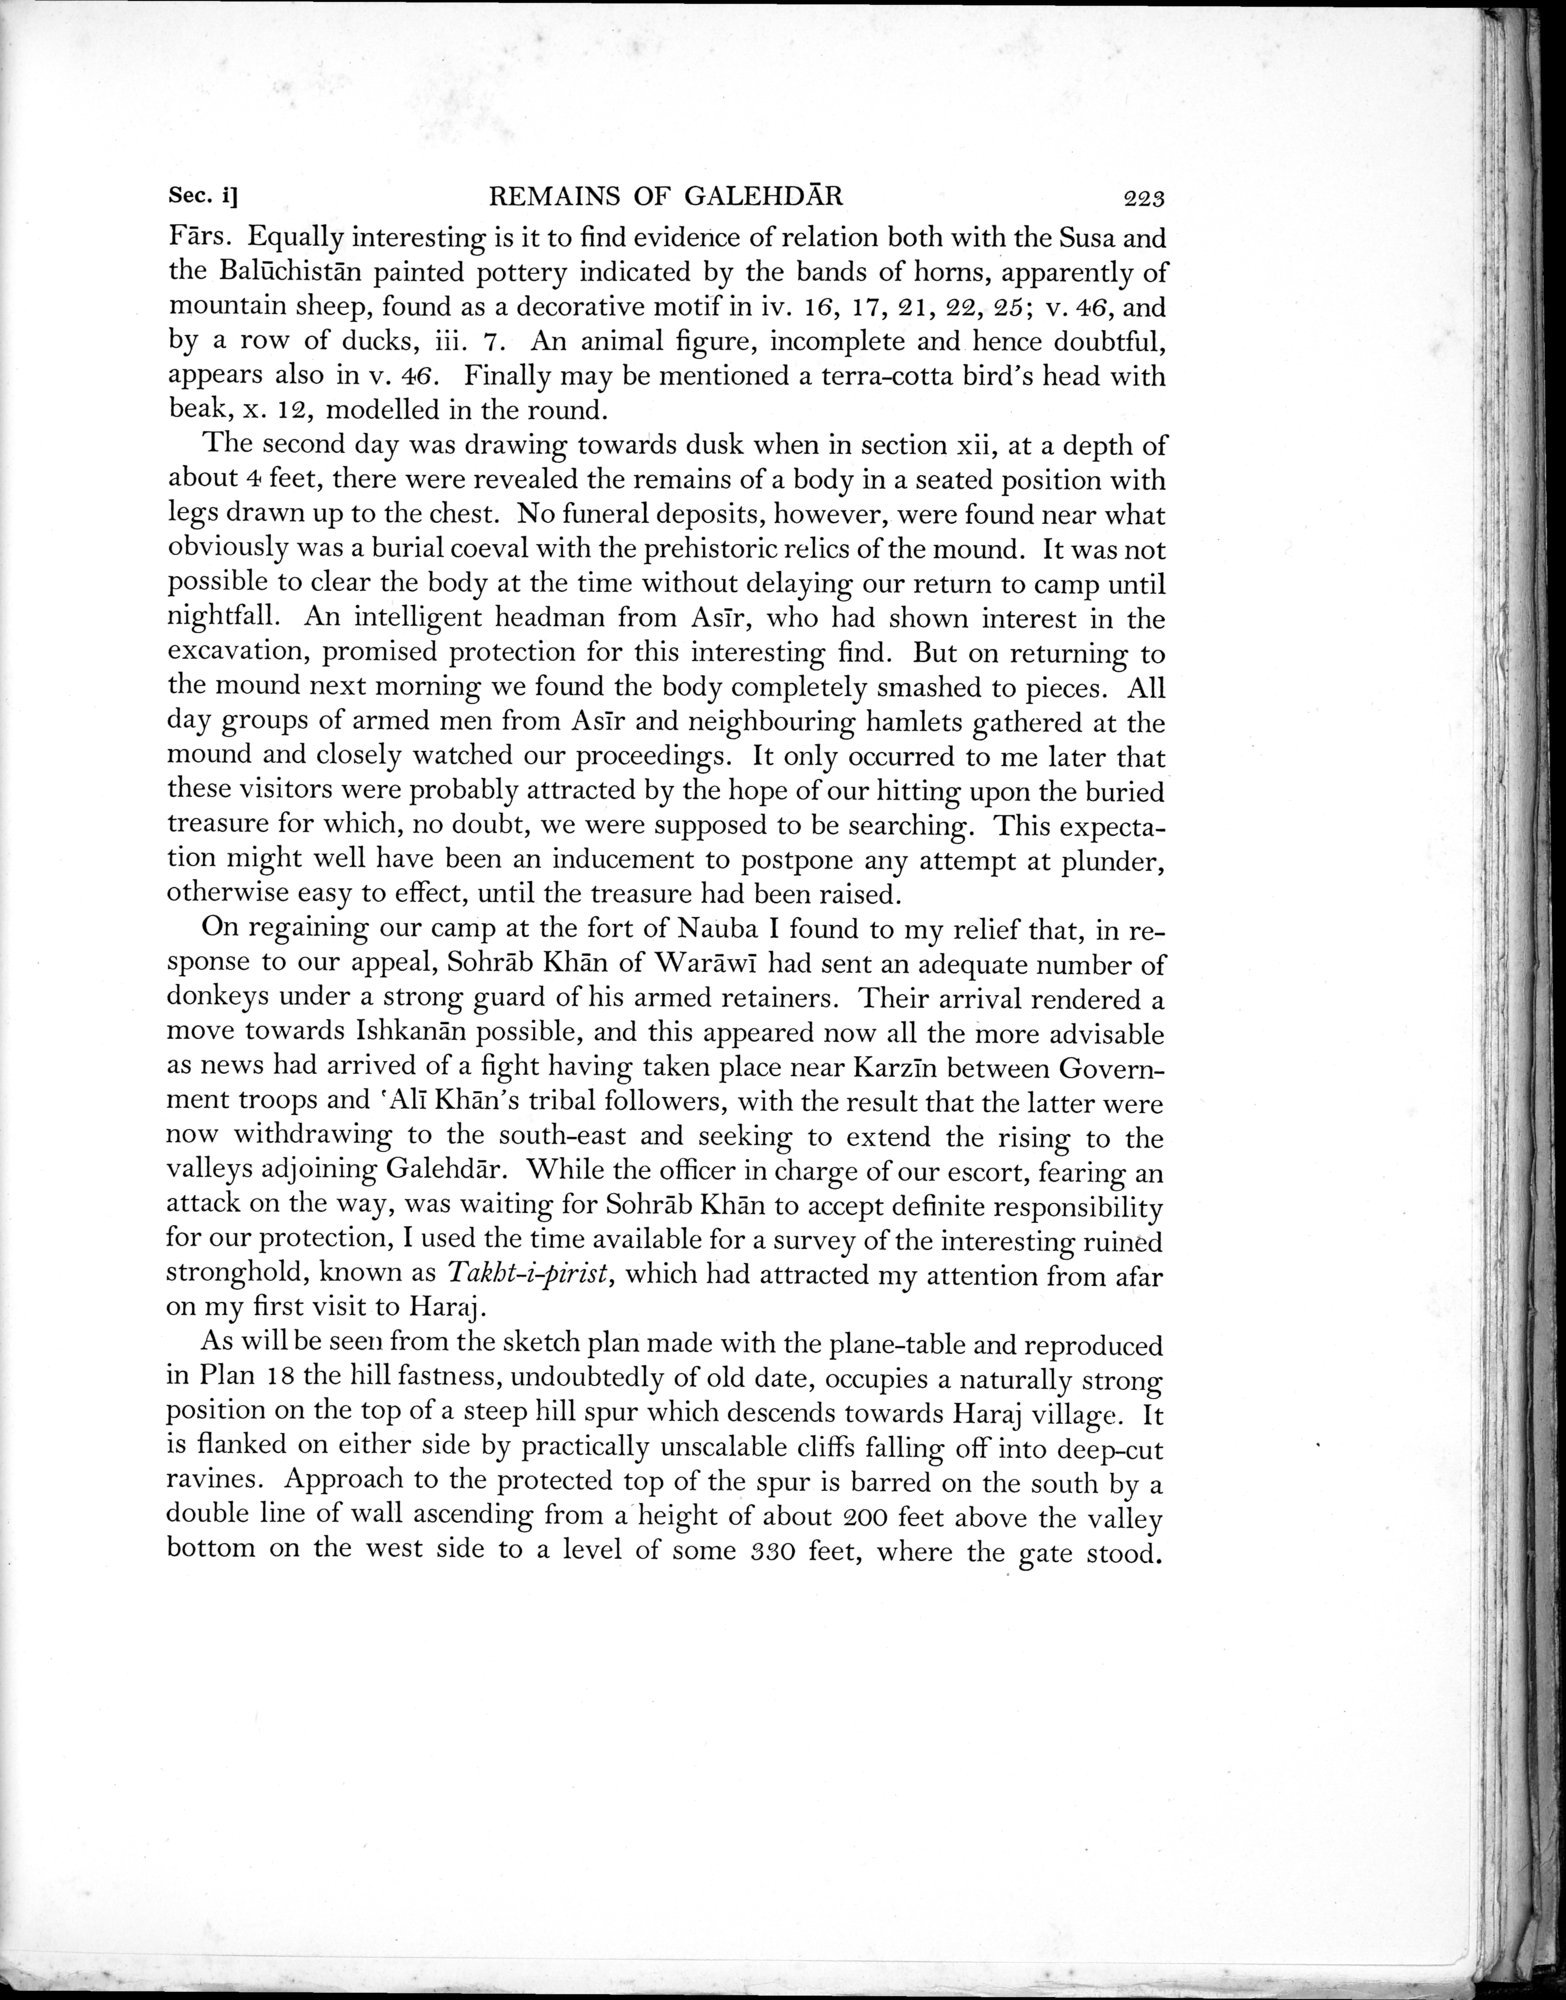 Archaeological Reconnaissances in North-Western India and South-Eastern Īrān : vol.1 / Page 305 (Grayscale High Resolution Image)